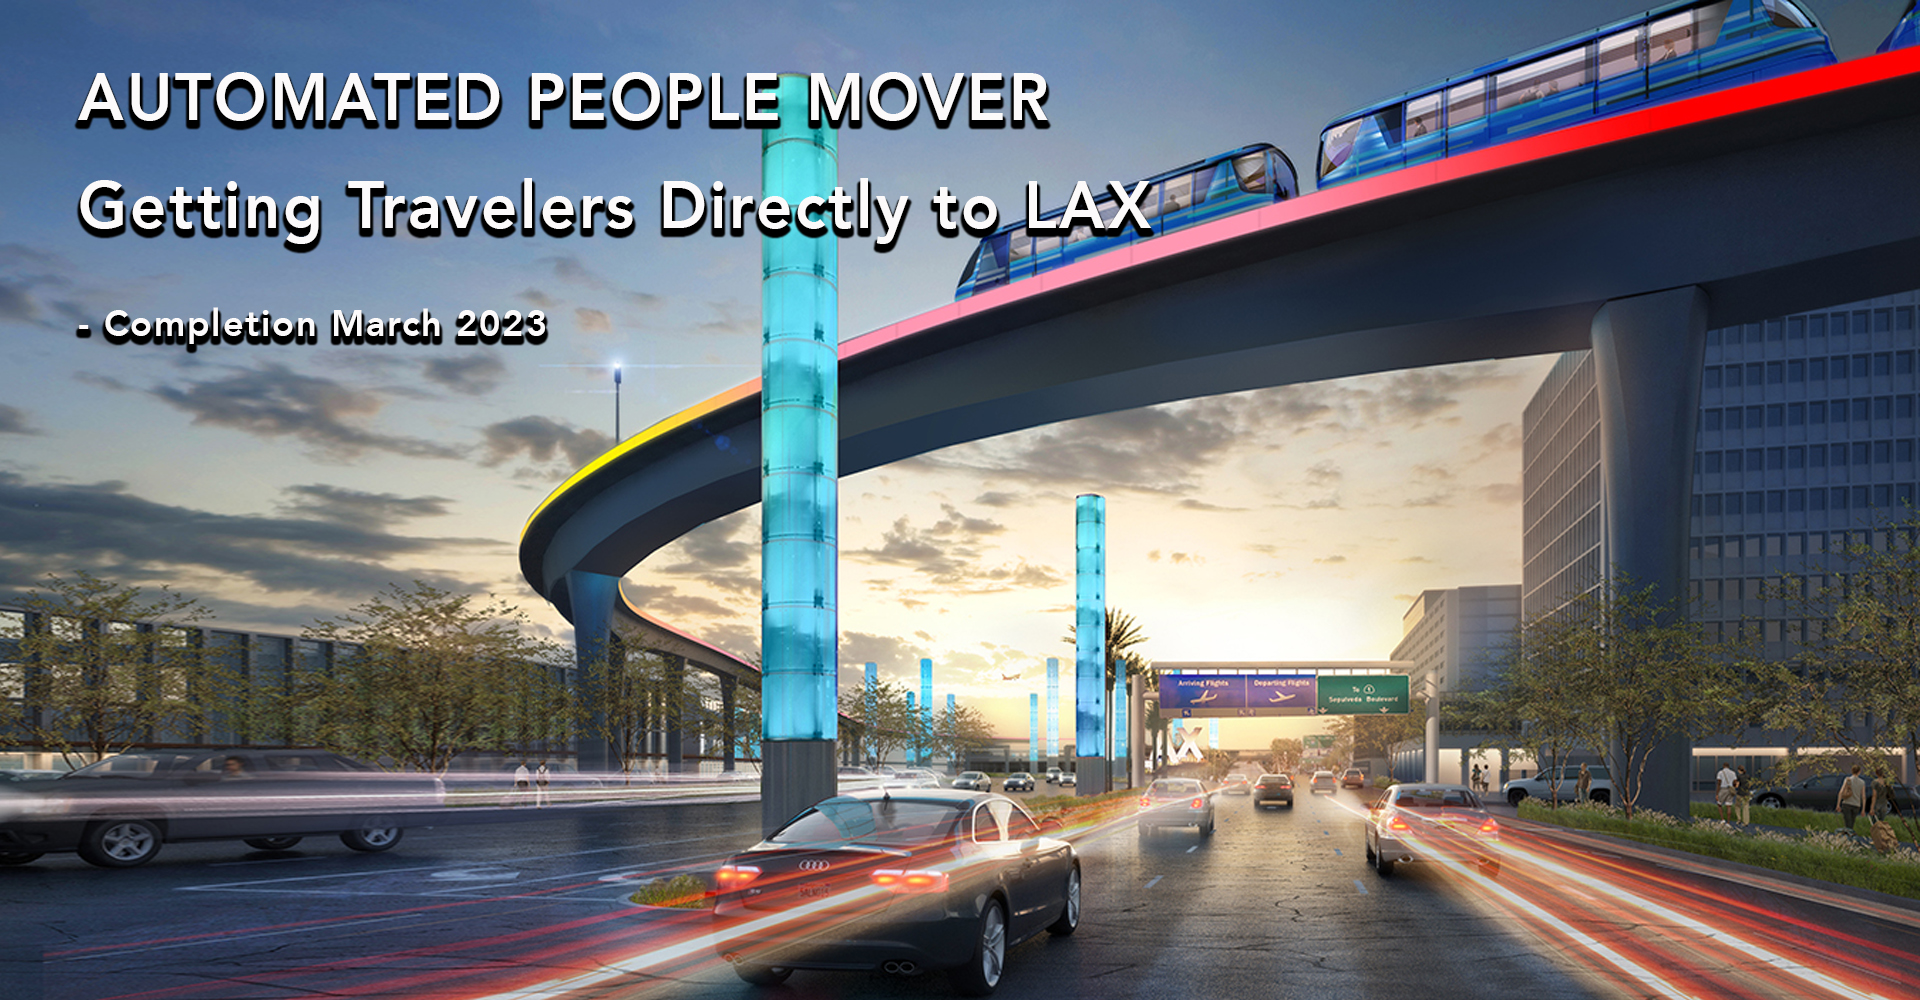 LAX people mover image 3.jpg